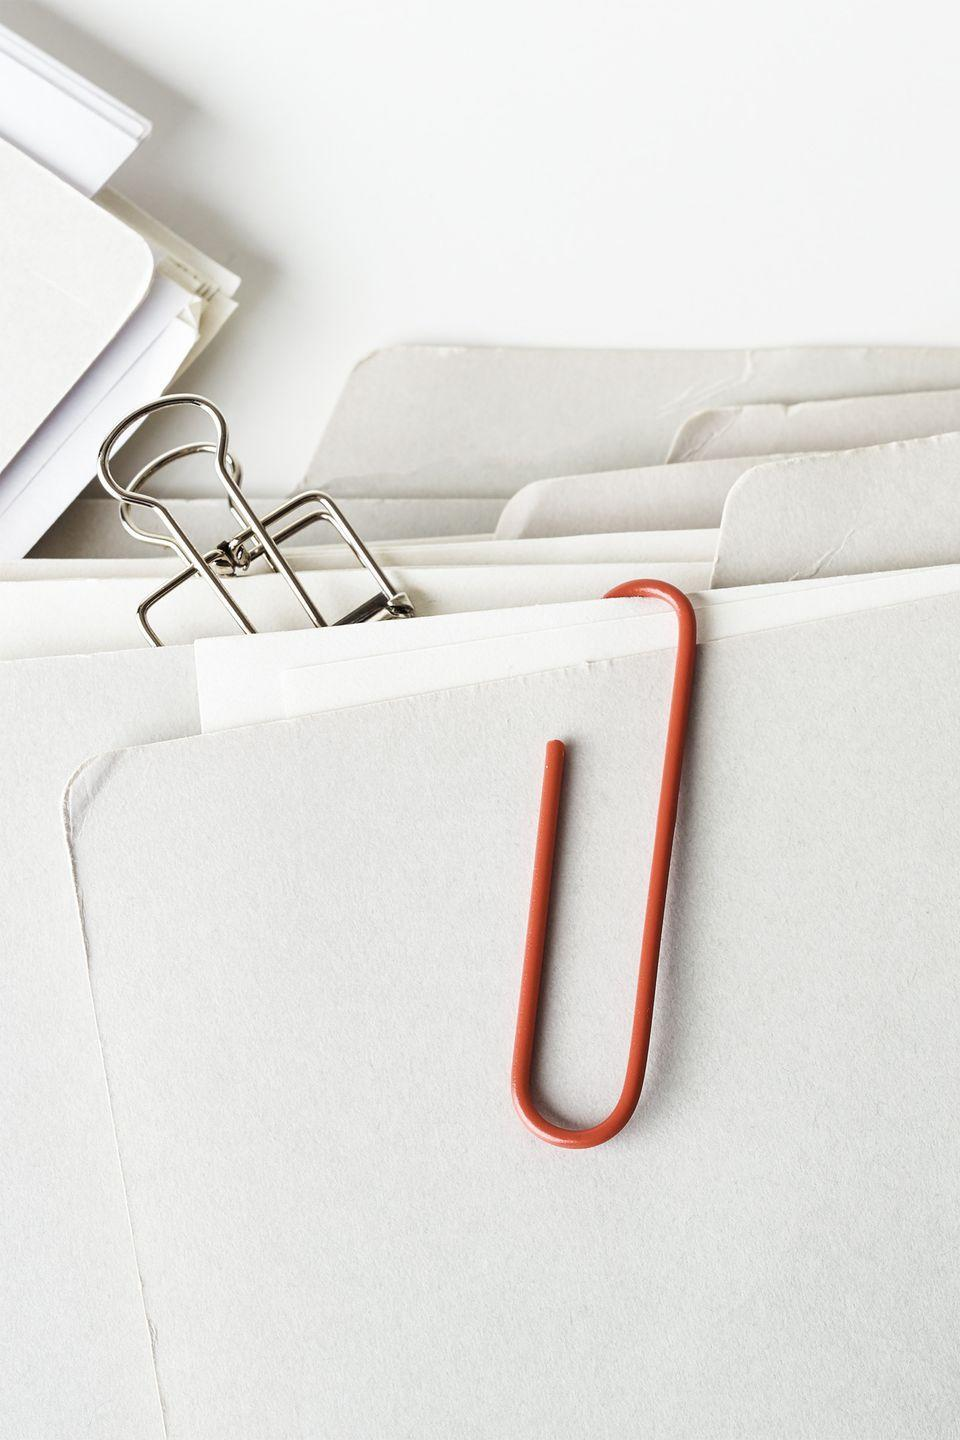 """<p>To organize smaller projects, write contact details on the front of the file folder.</p><p><strong><a class=""""link rapid-noclick-resp"""" href=""""https://www.amazon.com/AmazonBasics-File-Folders-Letter-Manila/dp/B01LYHE49W/?tag=syn-yahoo-20&ascsubtag=%5Bartid%7C10070.g.3310%5Bsrc%7Cyahoo-us"""" rel=""""nofollow noopener"""" target=""""_blank"""" data-ylk=""""slk:SHOP FILE FOLDERS"""">SHOP FILE FOLDERS</a></strong></p>"""